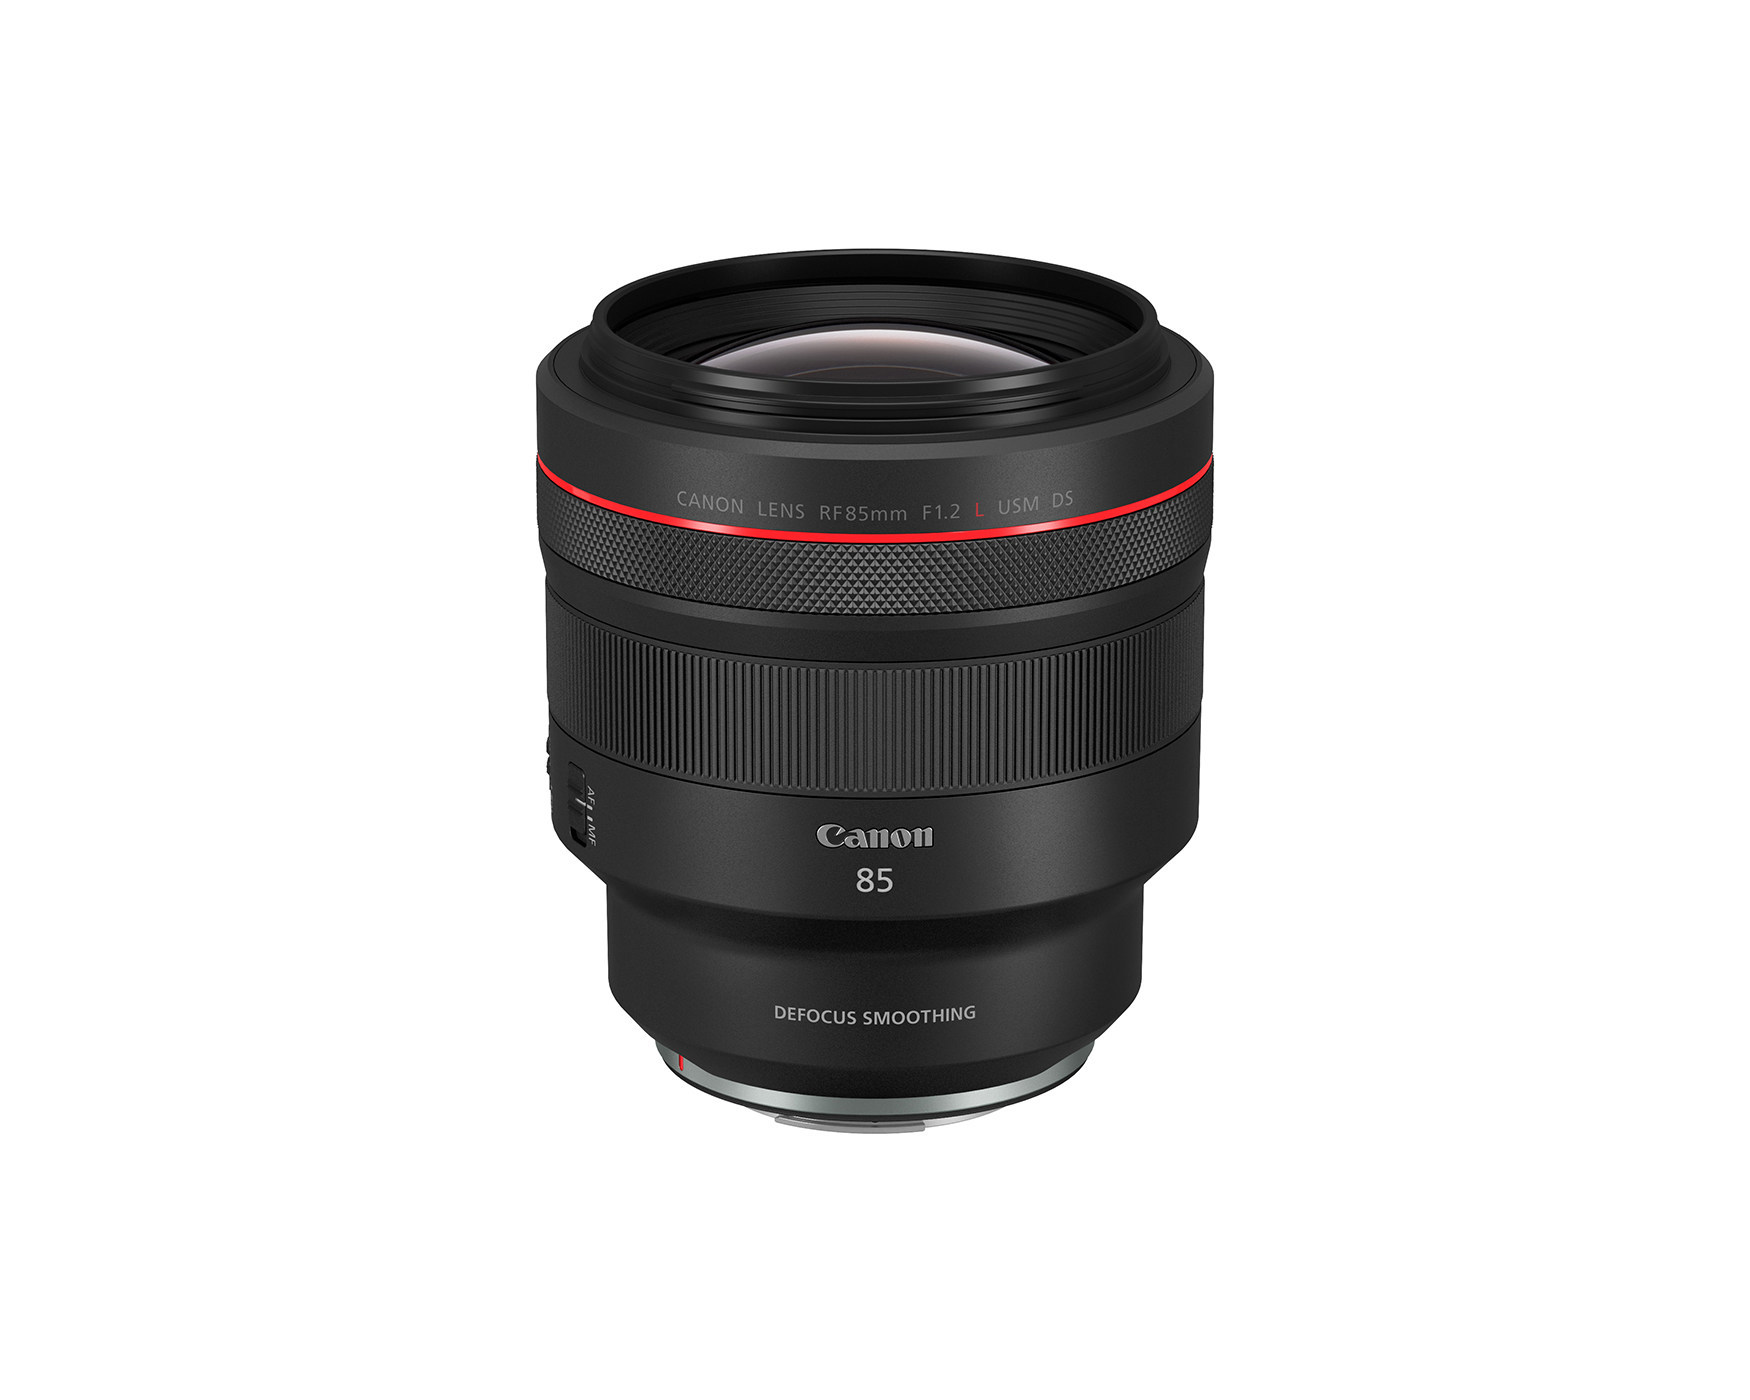 Canon 85mm F1.2L USM DS